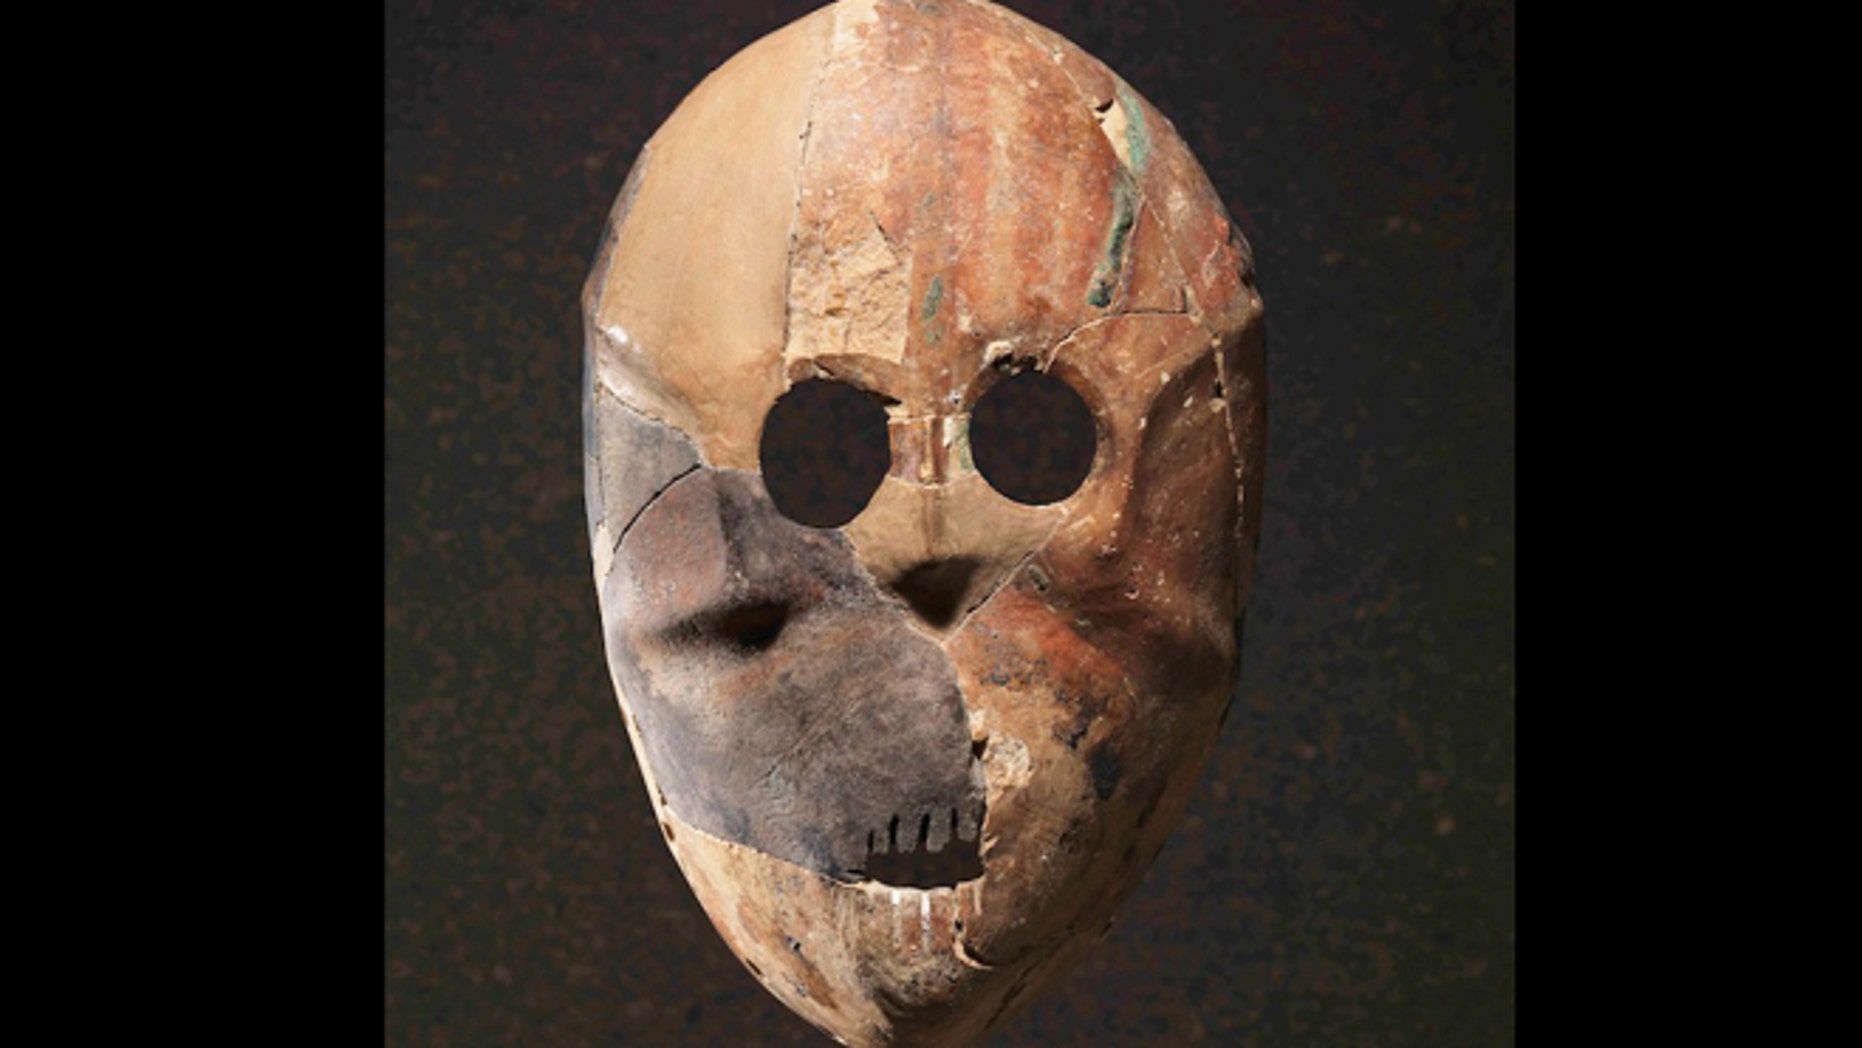 Researchers think these masks could have been worn comfortably on the face during ancient rituals. This mask comes from the site of Horvat Duma in the Judean Hills.